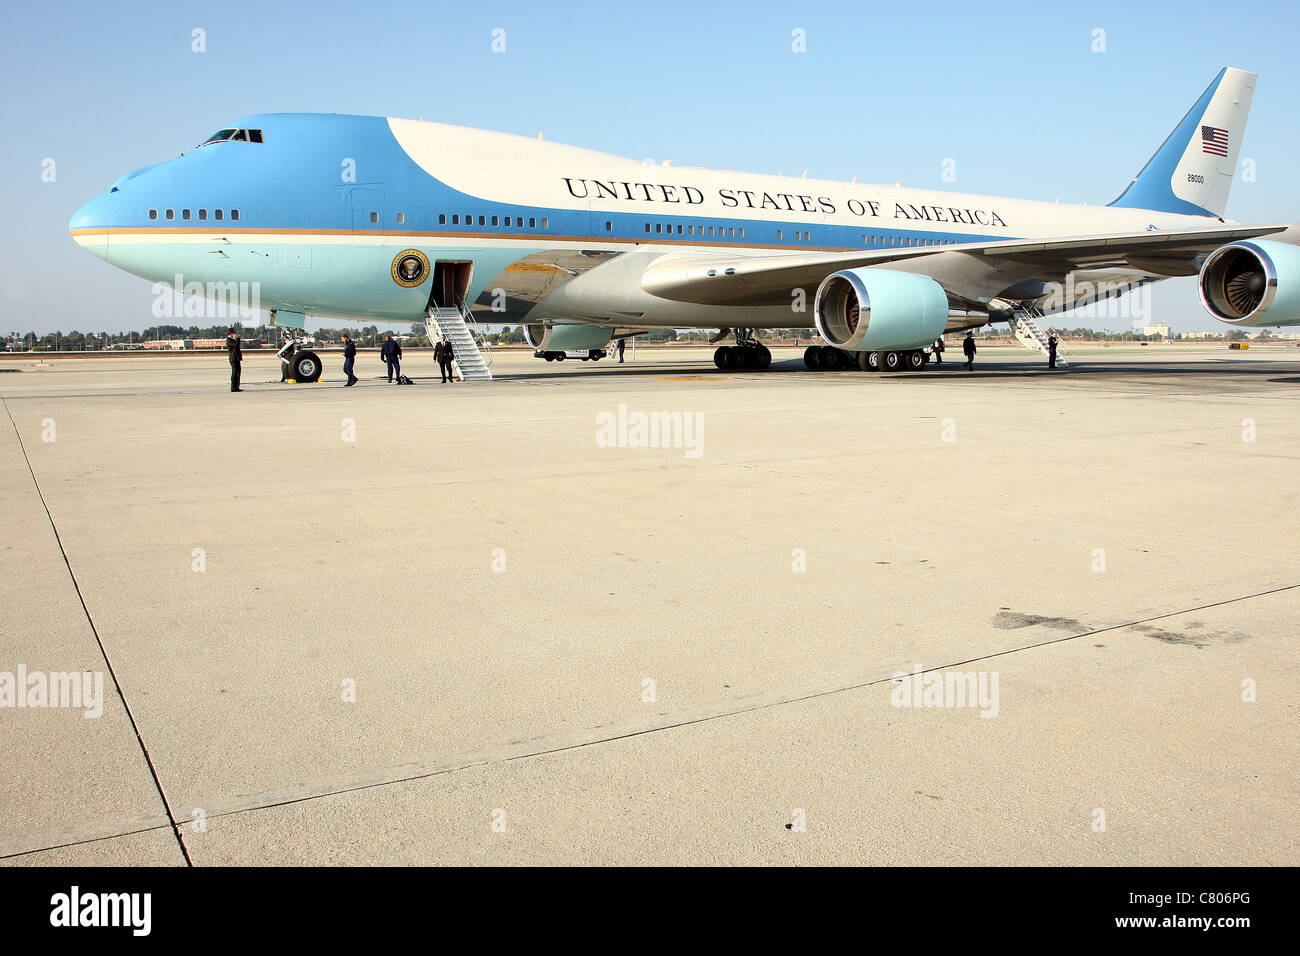 AIR FORCE ONE US PRESIDENT BARACK OBAMA LANDS AT LAX LOS ANGELES CALIFORNIA USA 26 September 2011 - Stock Image